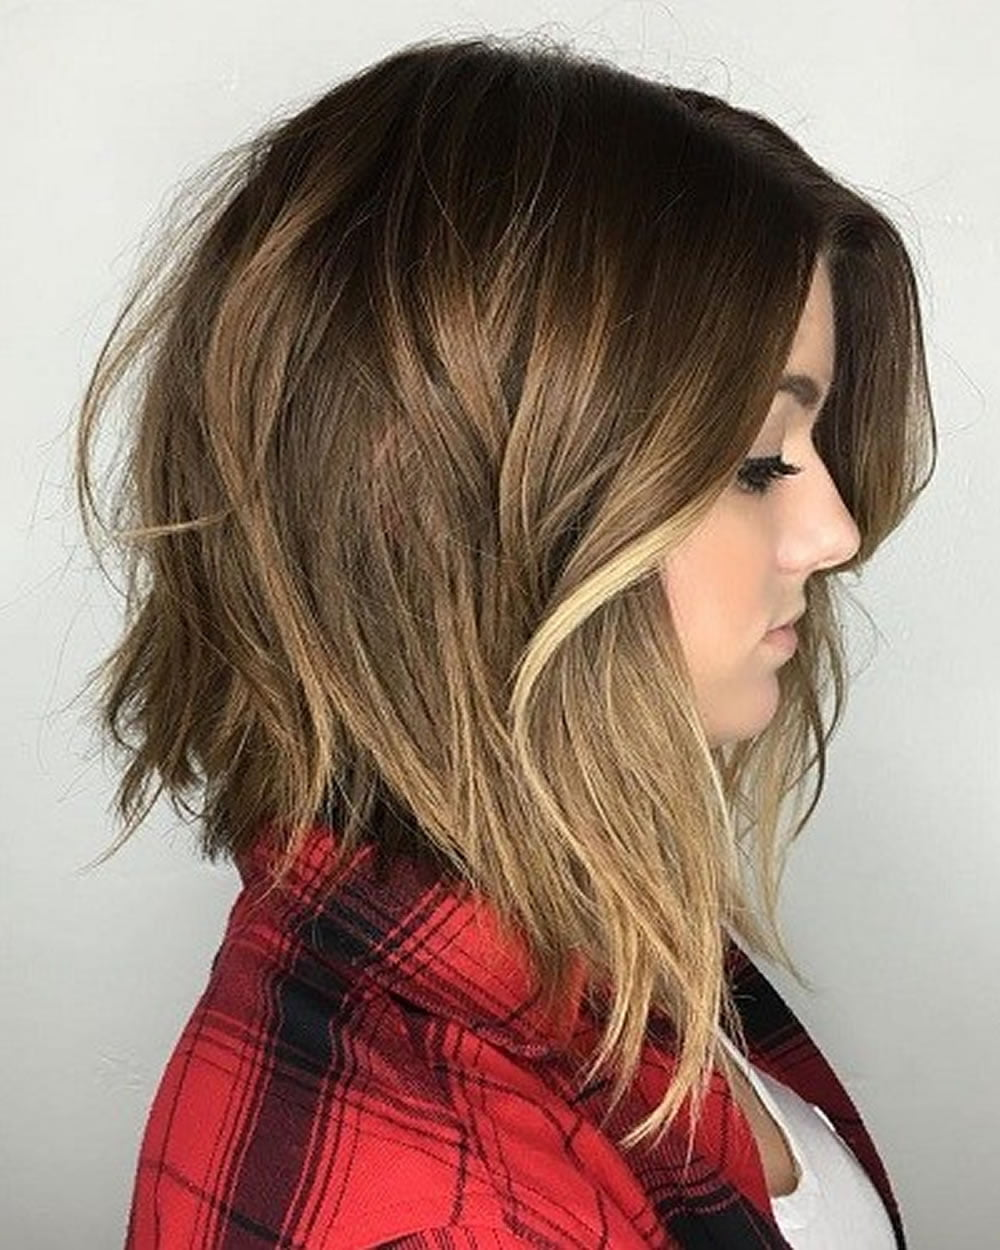 Asymmertical Shaggy Angled Bob Hairstyle 2018-2019 – HAIRSTYLES